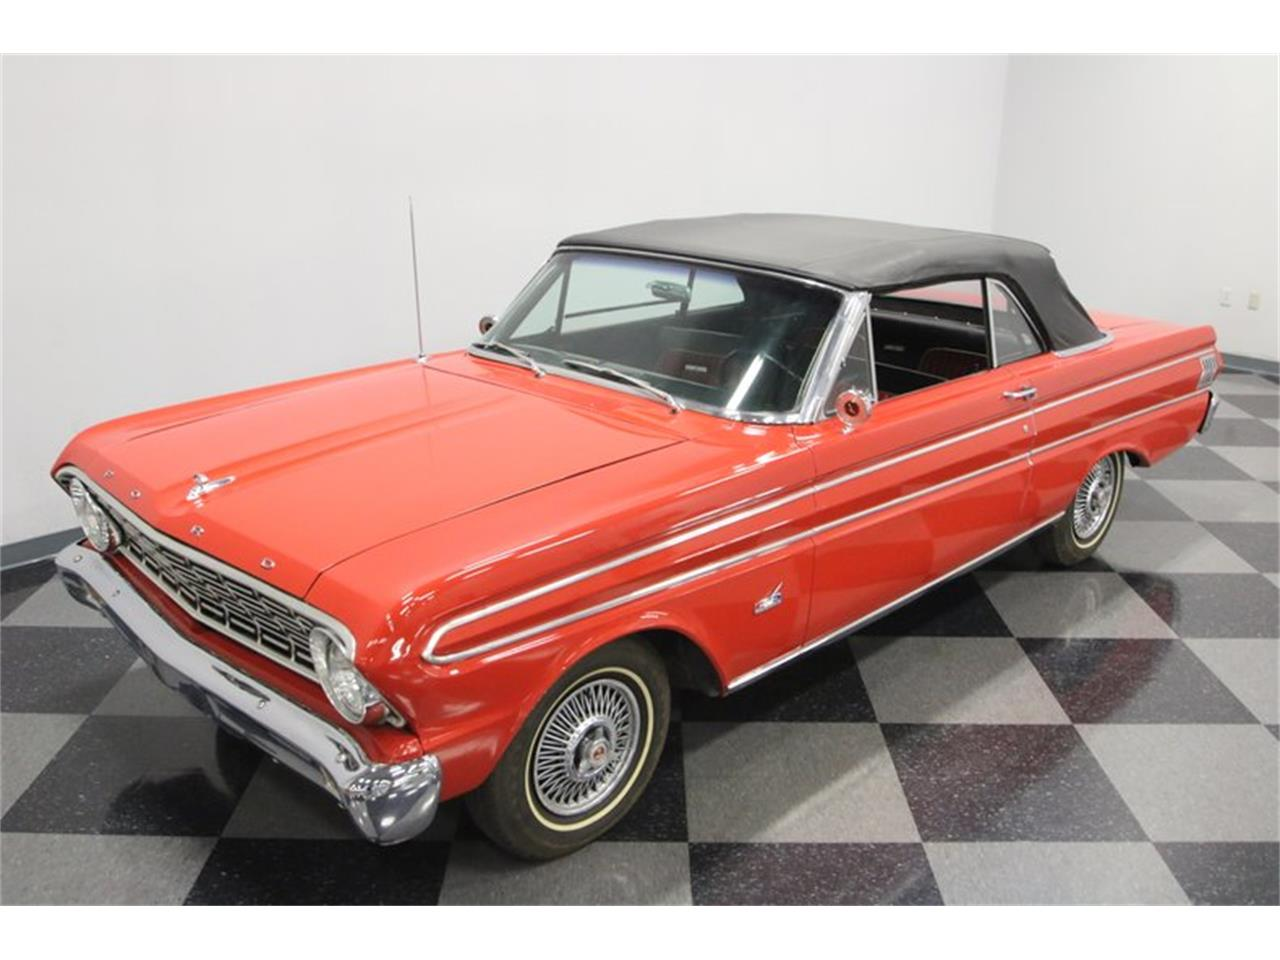 1964 Ford Falcon Futura for sale in Lavergne, TN – photo 22